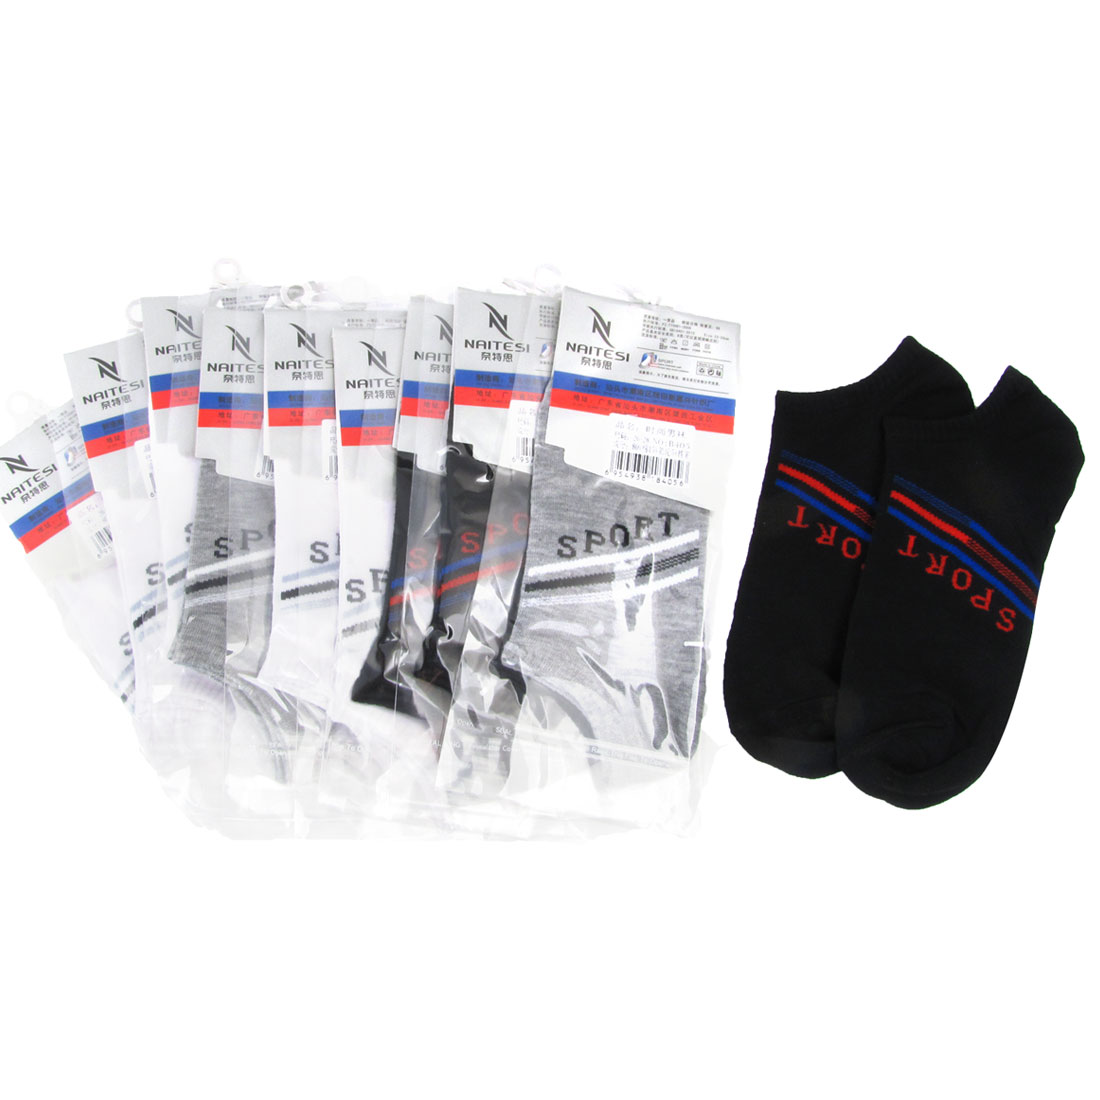 10 Pairs Elastic Cuff Ribbed Letter Print Ankle Socks Black White Gray